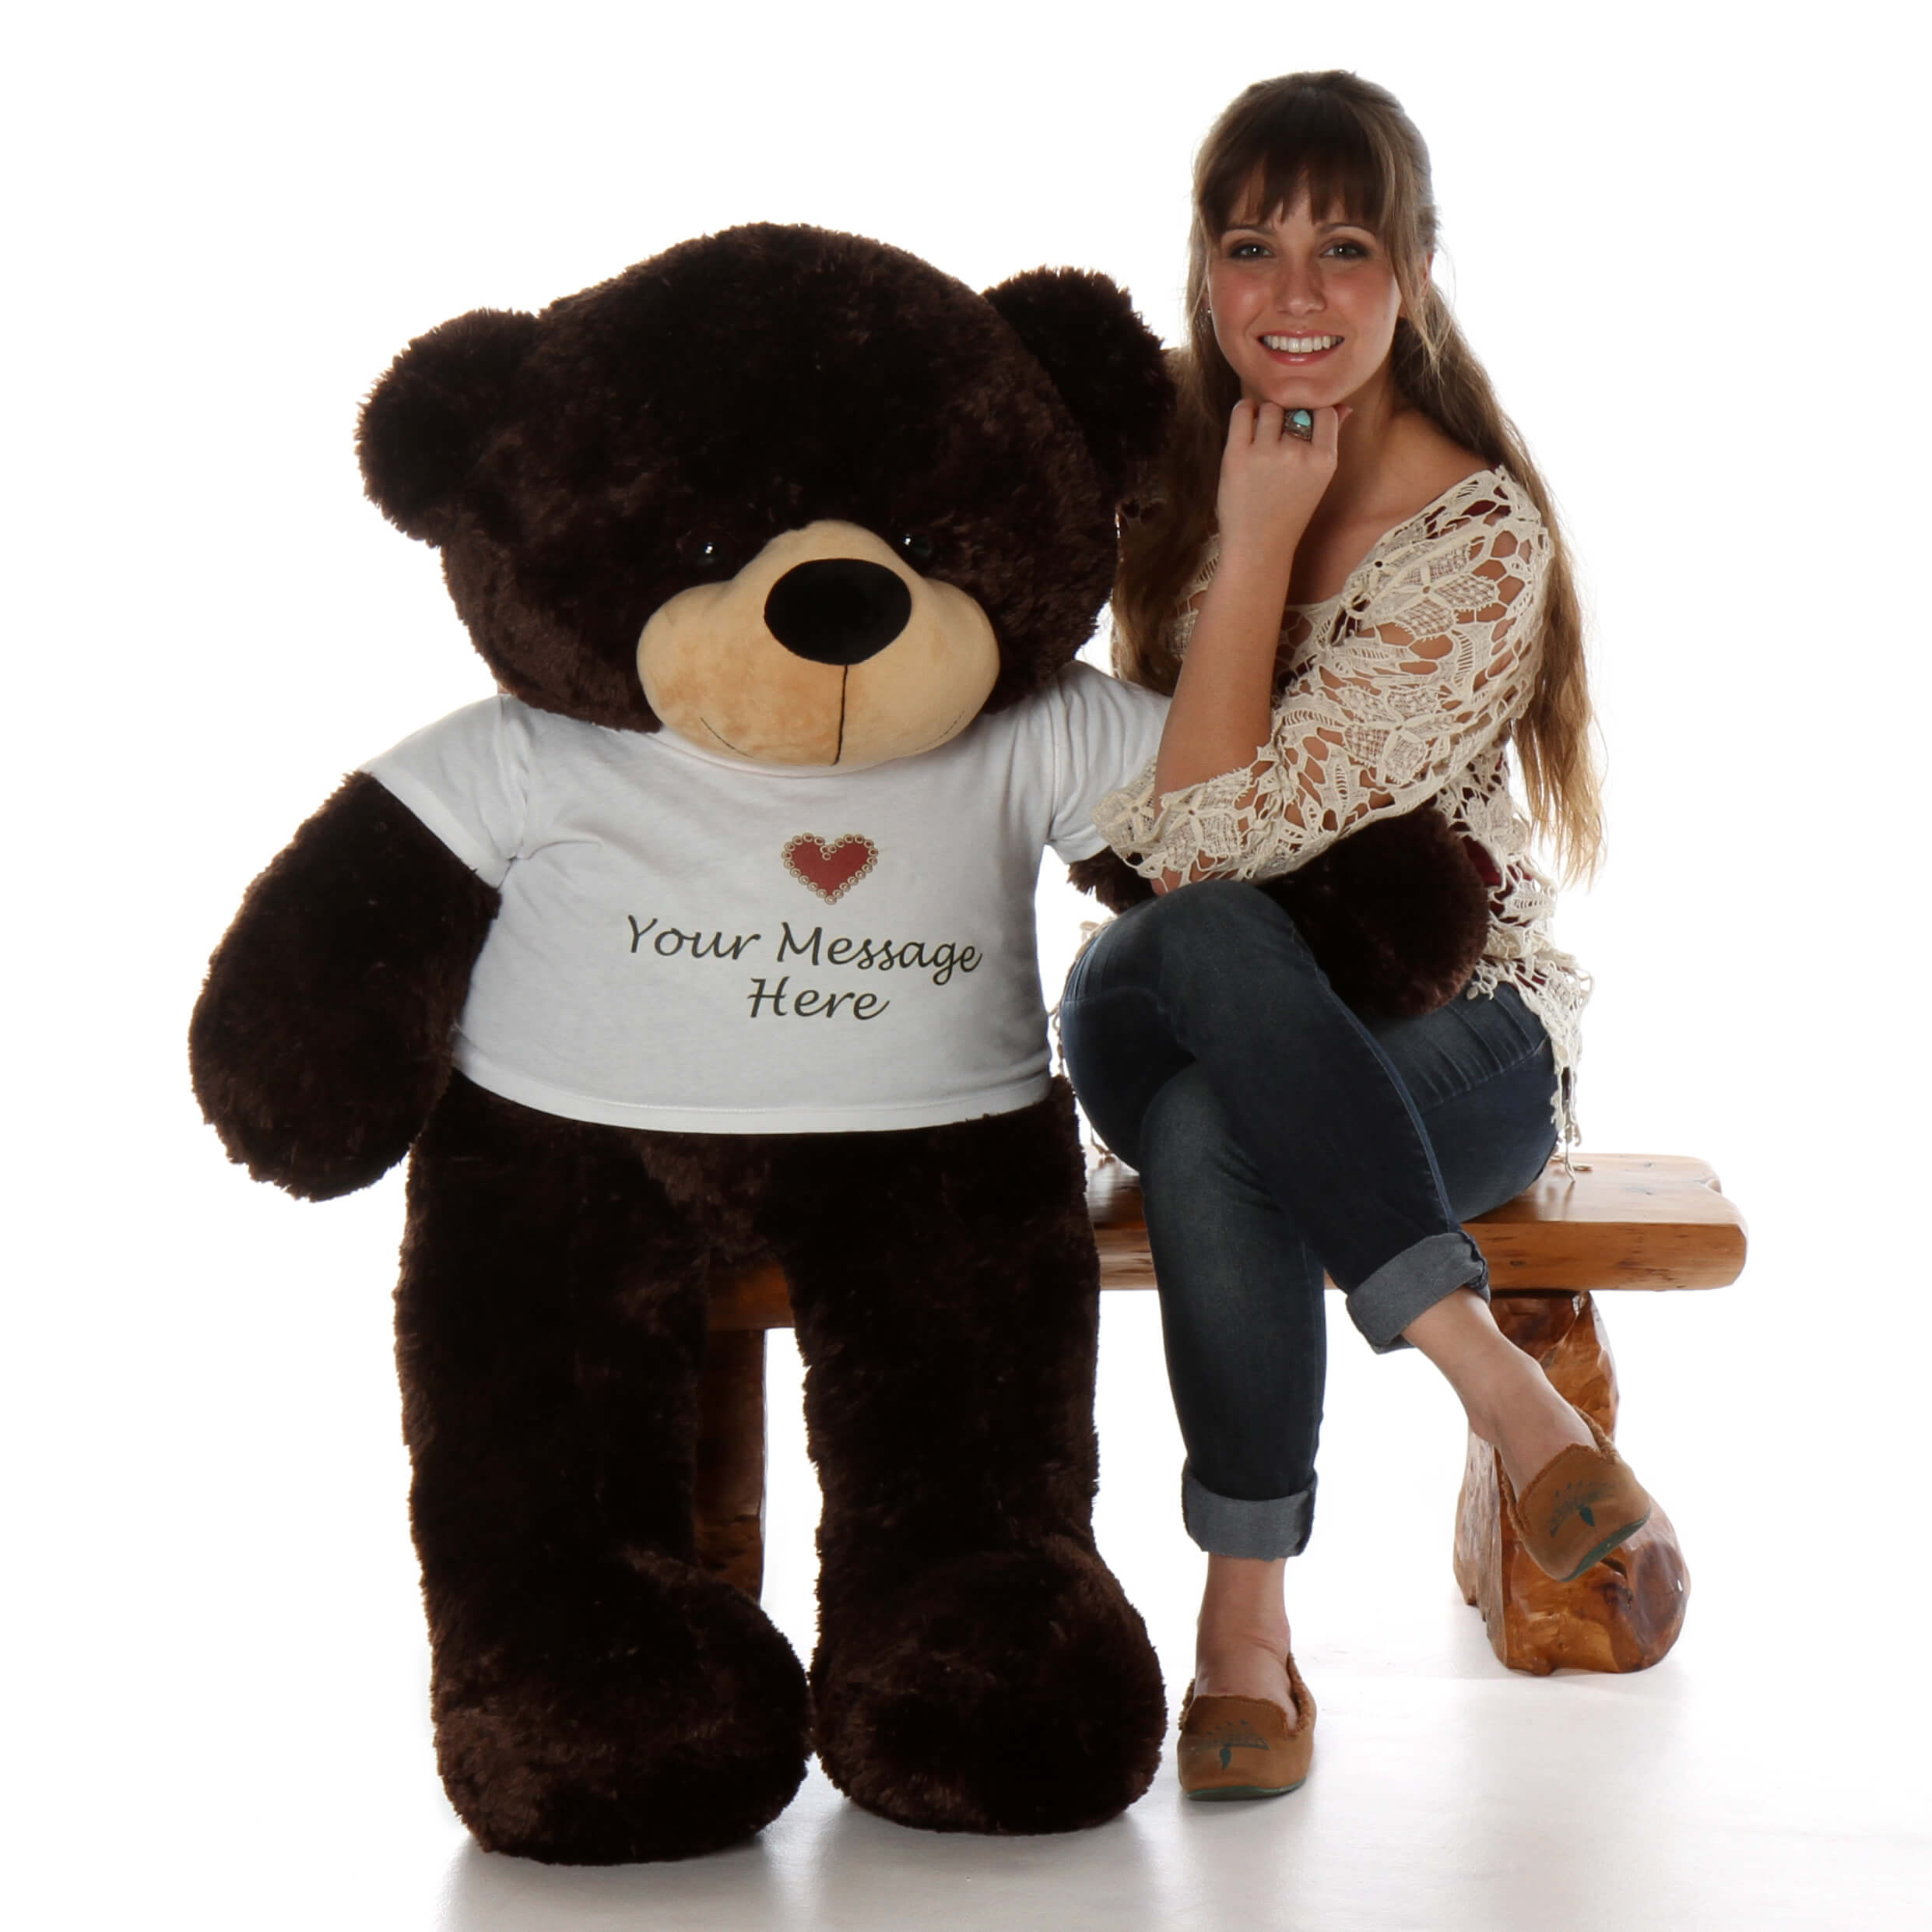 48in-brownie-cuddles-big-personalized-teddy-bear-with-heart-stamp-t-shirt-48in-1.jpg